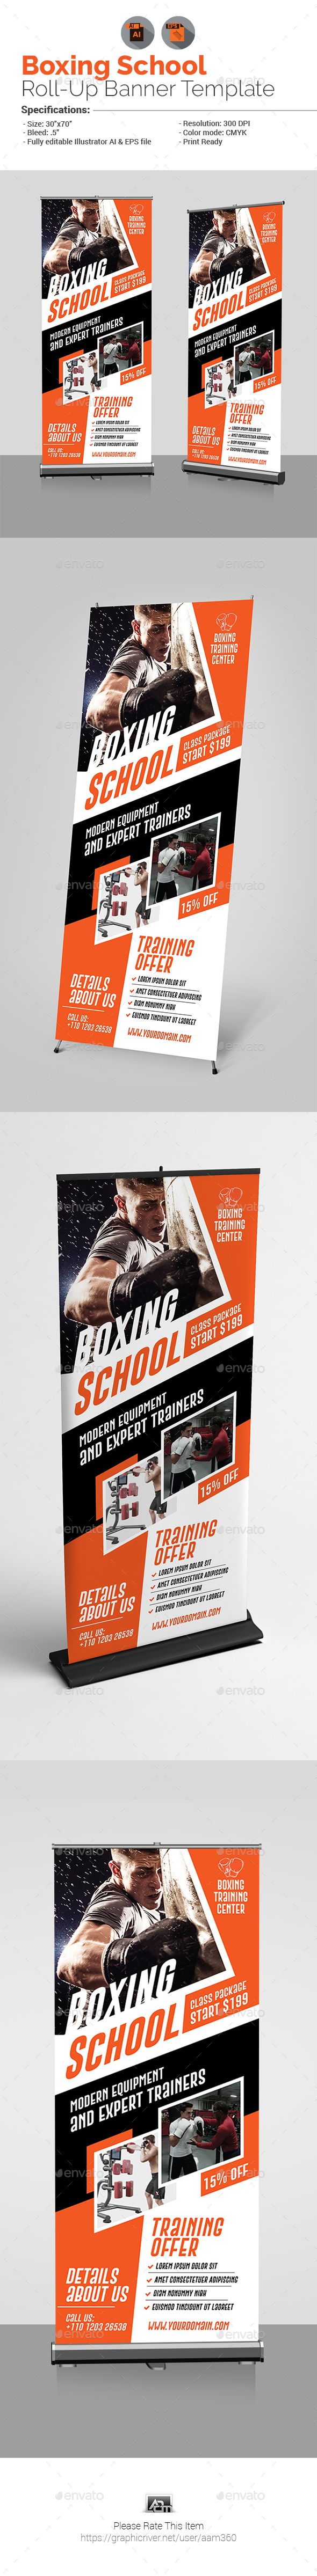 GraphicRiver Boxing School Roll-Up Banner 20881027